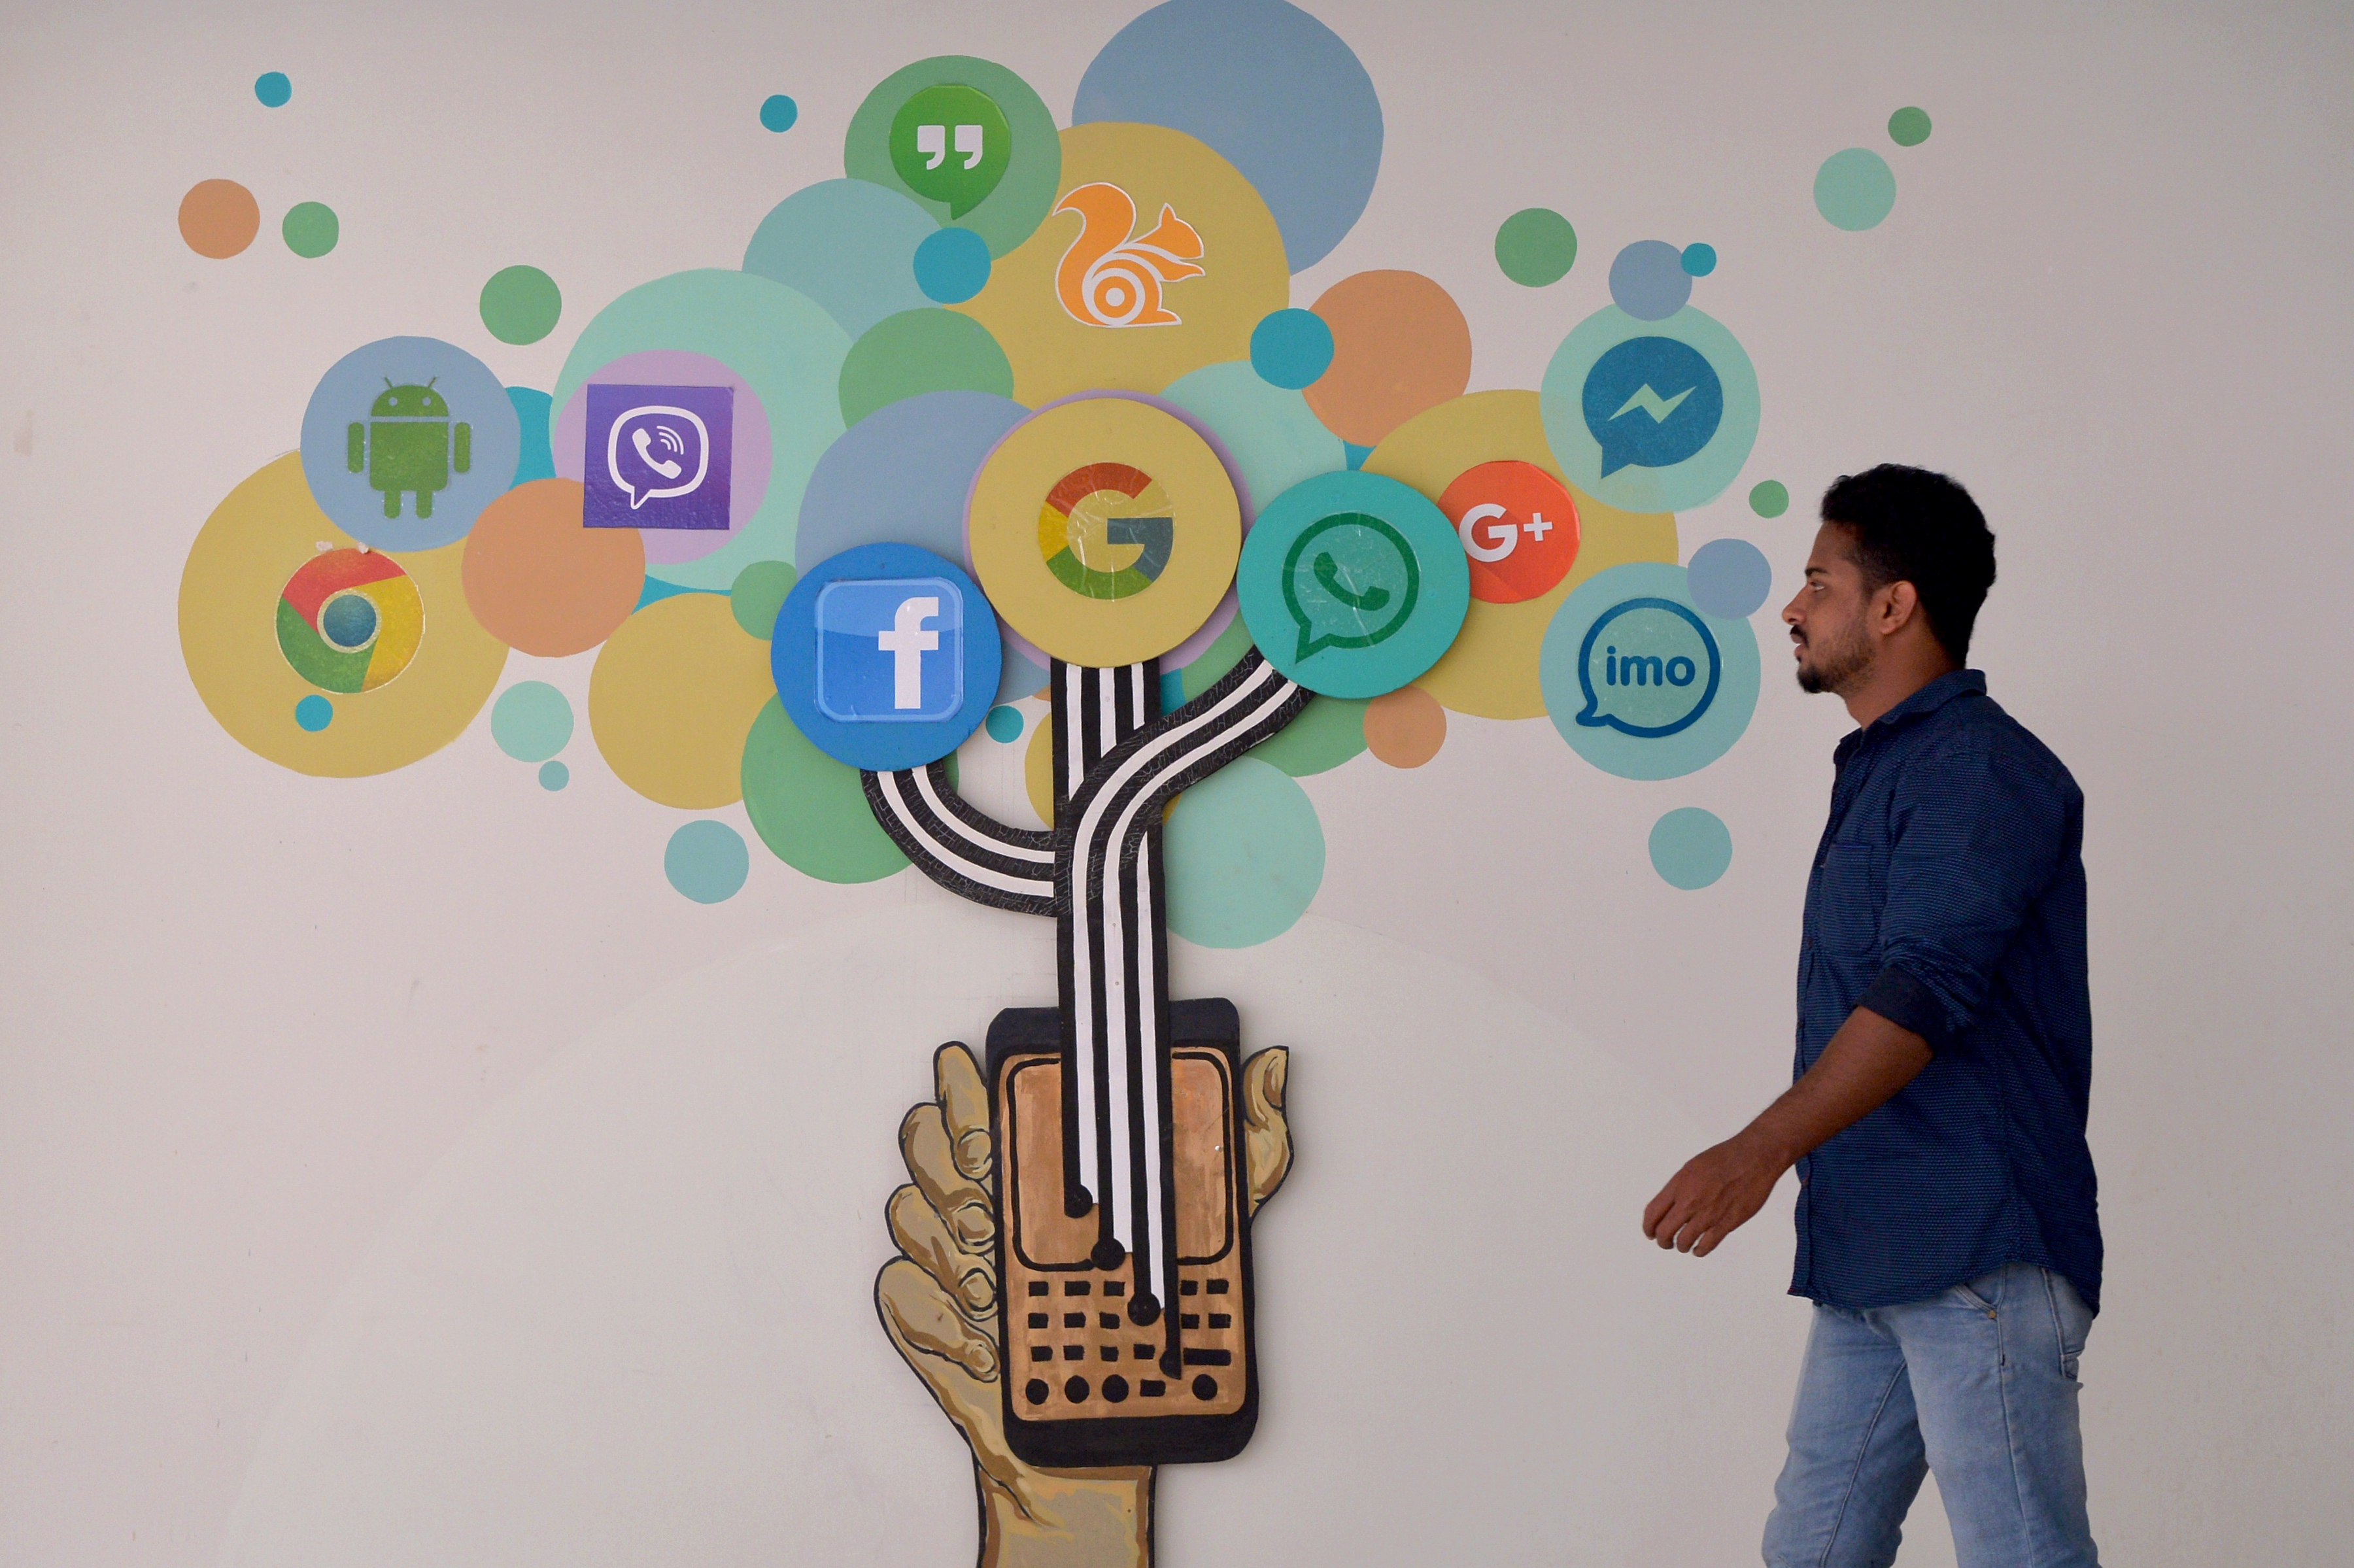 An Indian visitor passes a mural depicting various social medias including Facebook, inside a building in Bangalore on March 22, 2018. (Photo credit should read MANJUNATH KIRAN/AFP/Getty Images)